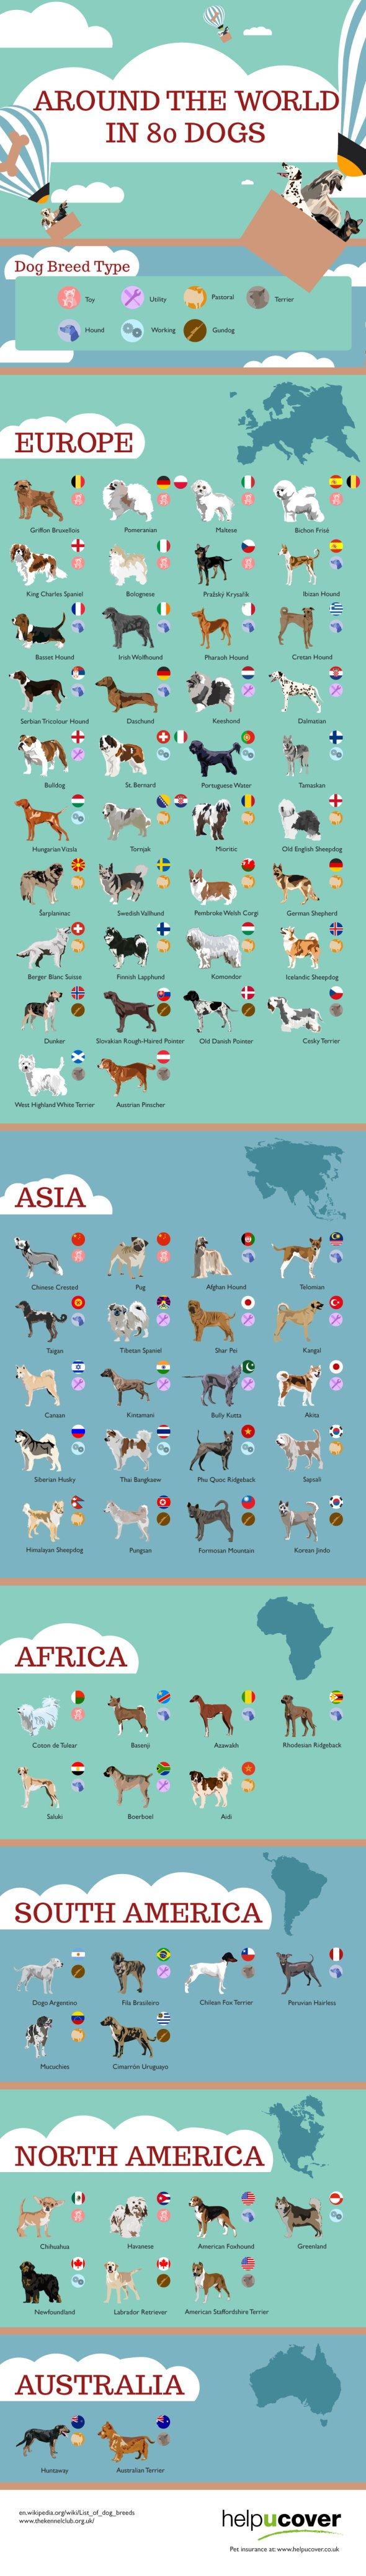 80_dogs_around_the_world_full